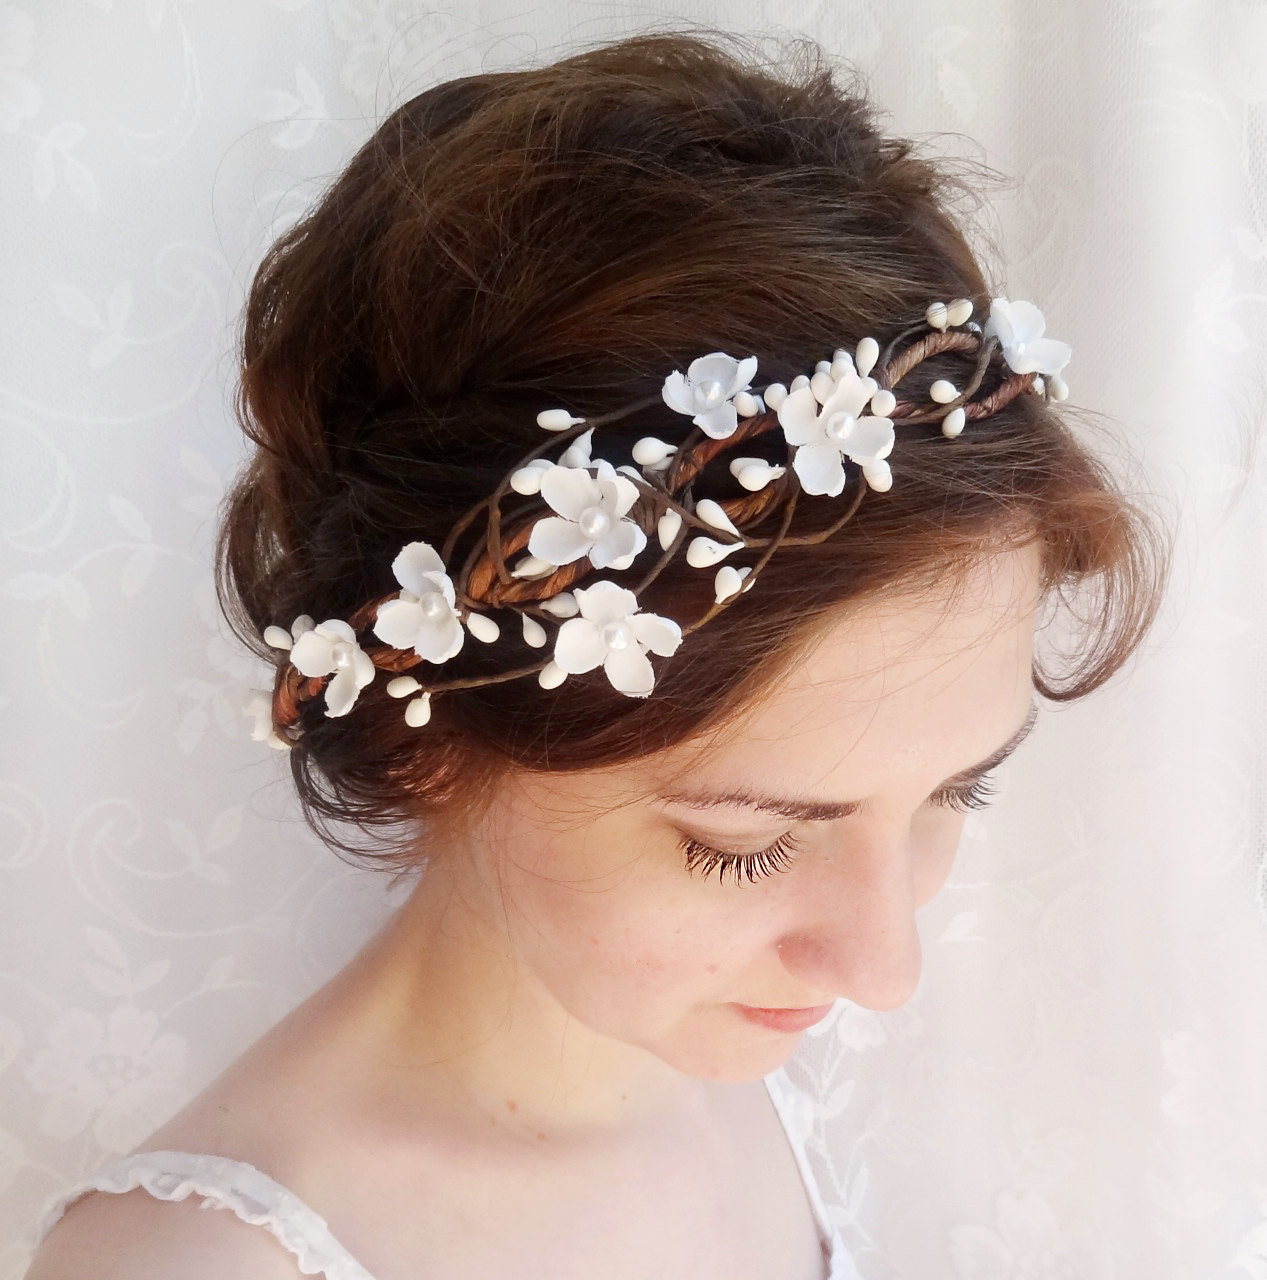 Bridal hair accessories wedding flower headpiece white flower bridal hair accessories wedding flower headpiece white flower crown circlet whimsy rustic wedding flower crown mightylinksfo